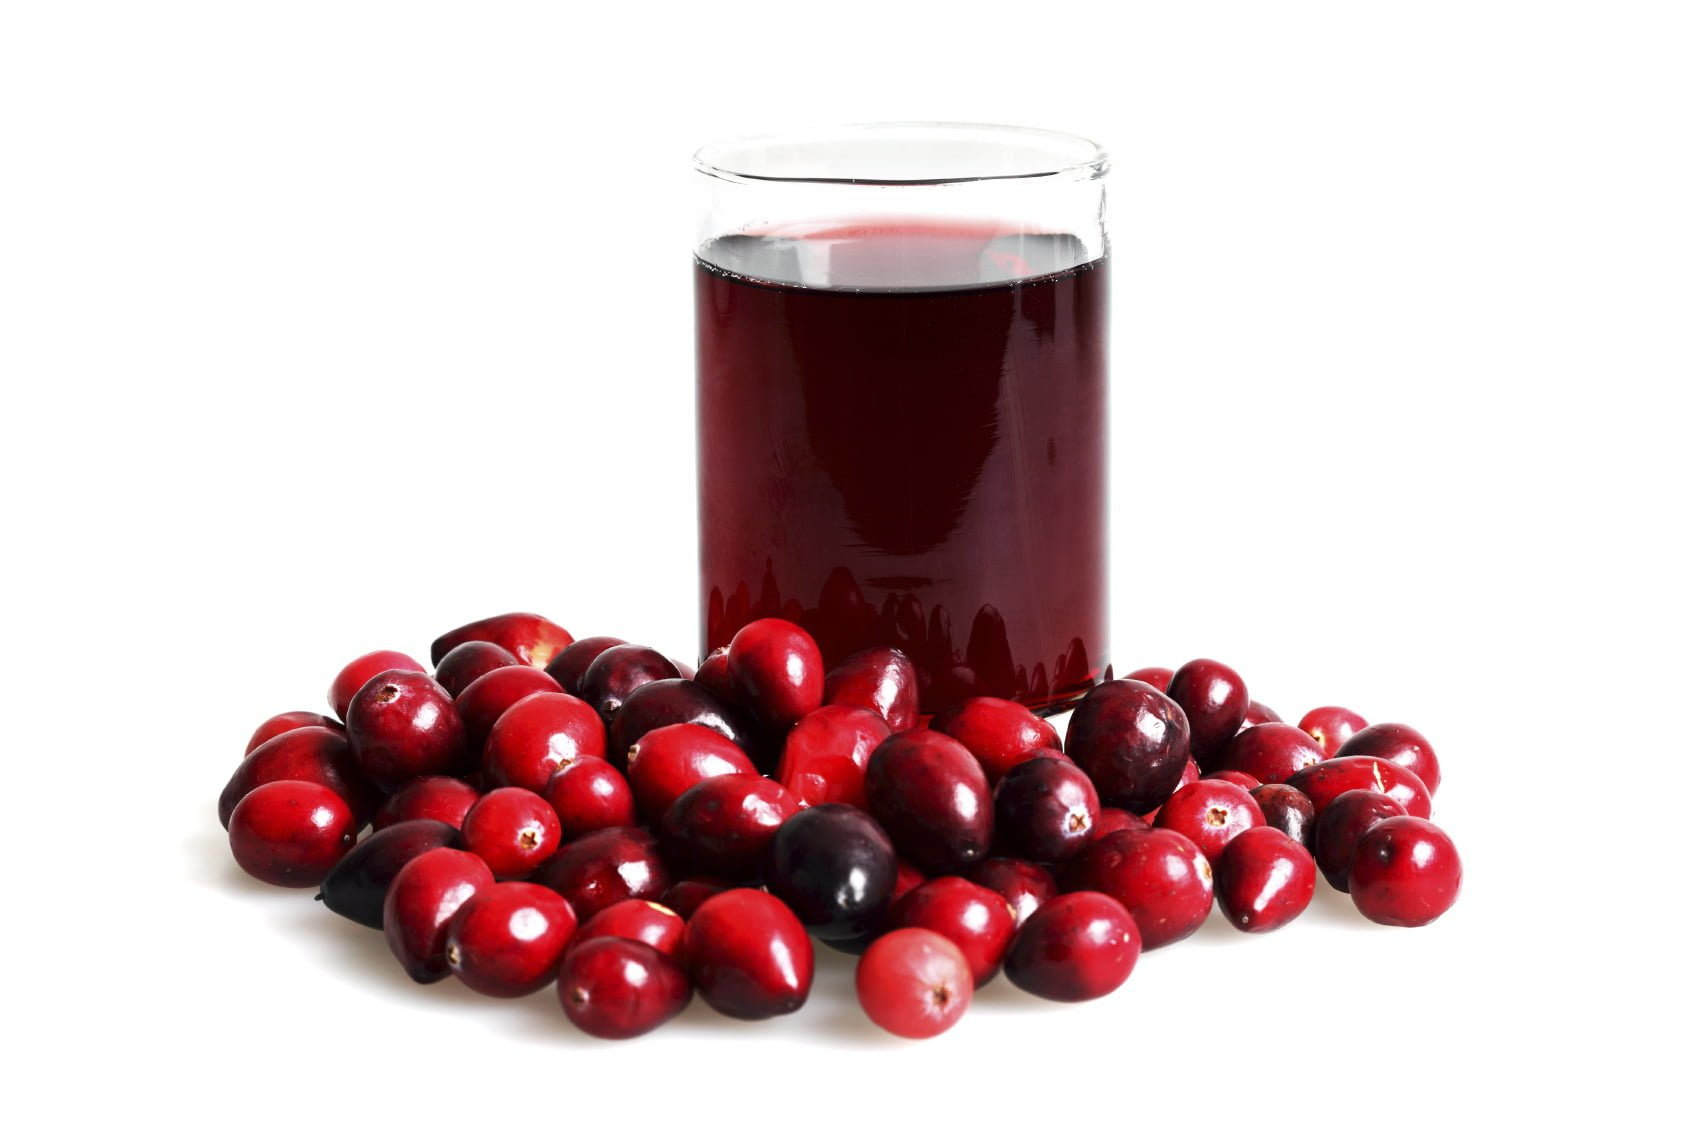 Cranberry juice treats urinary tract infection and aids weight loss ccuart Choice Image